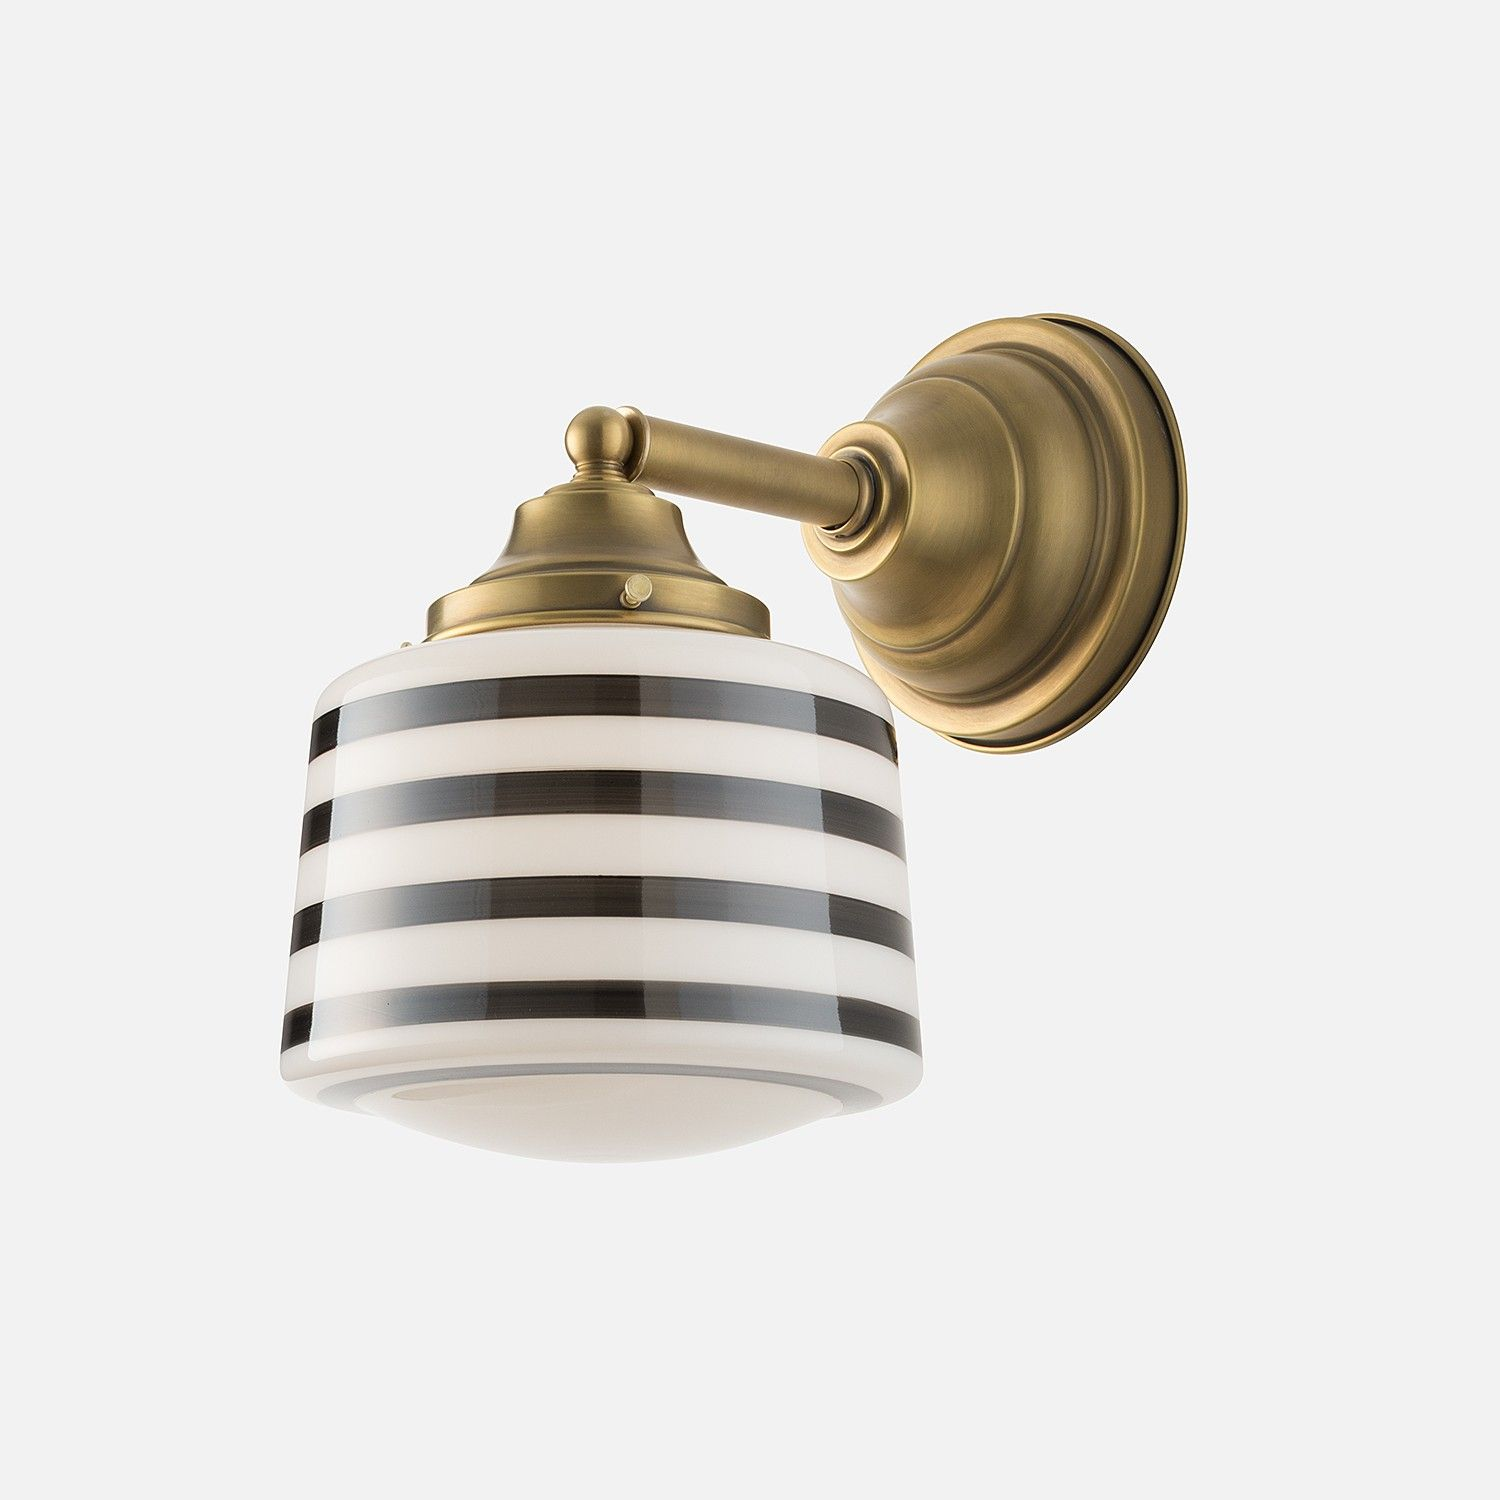 Drum Shade  Gray Bands  Unique Architecture Schoolhouse New Light Fixtures Bathroom Inspiration